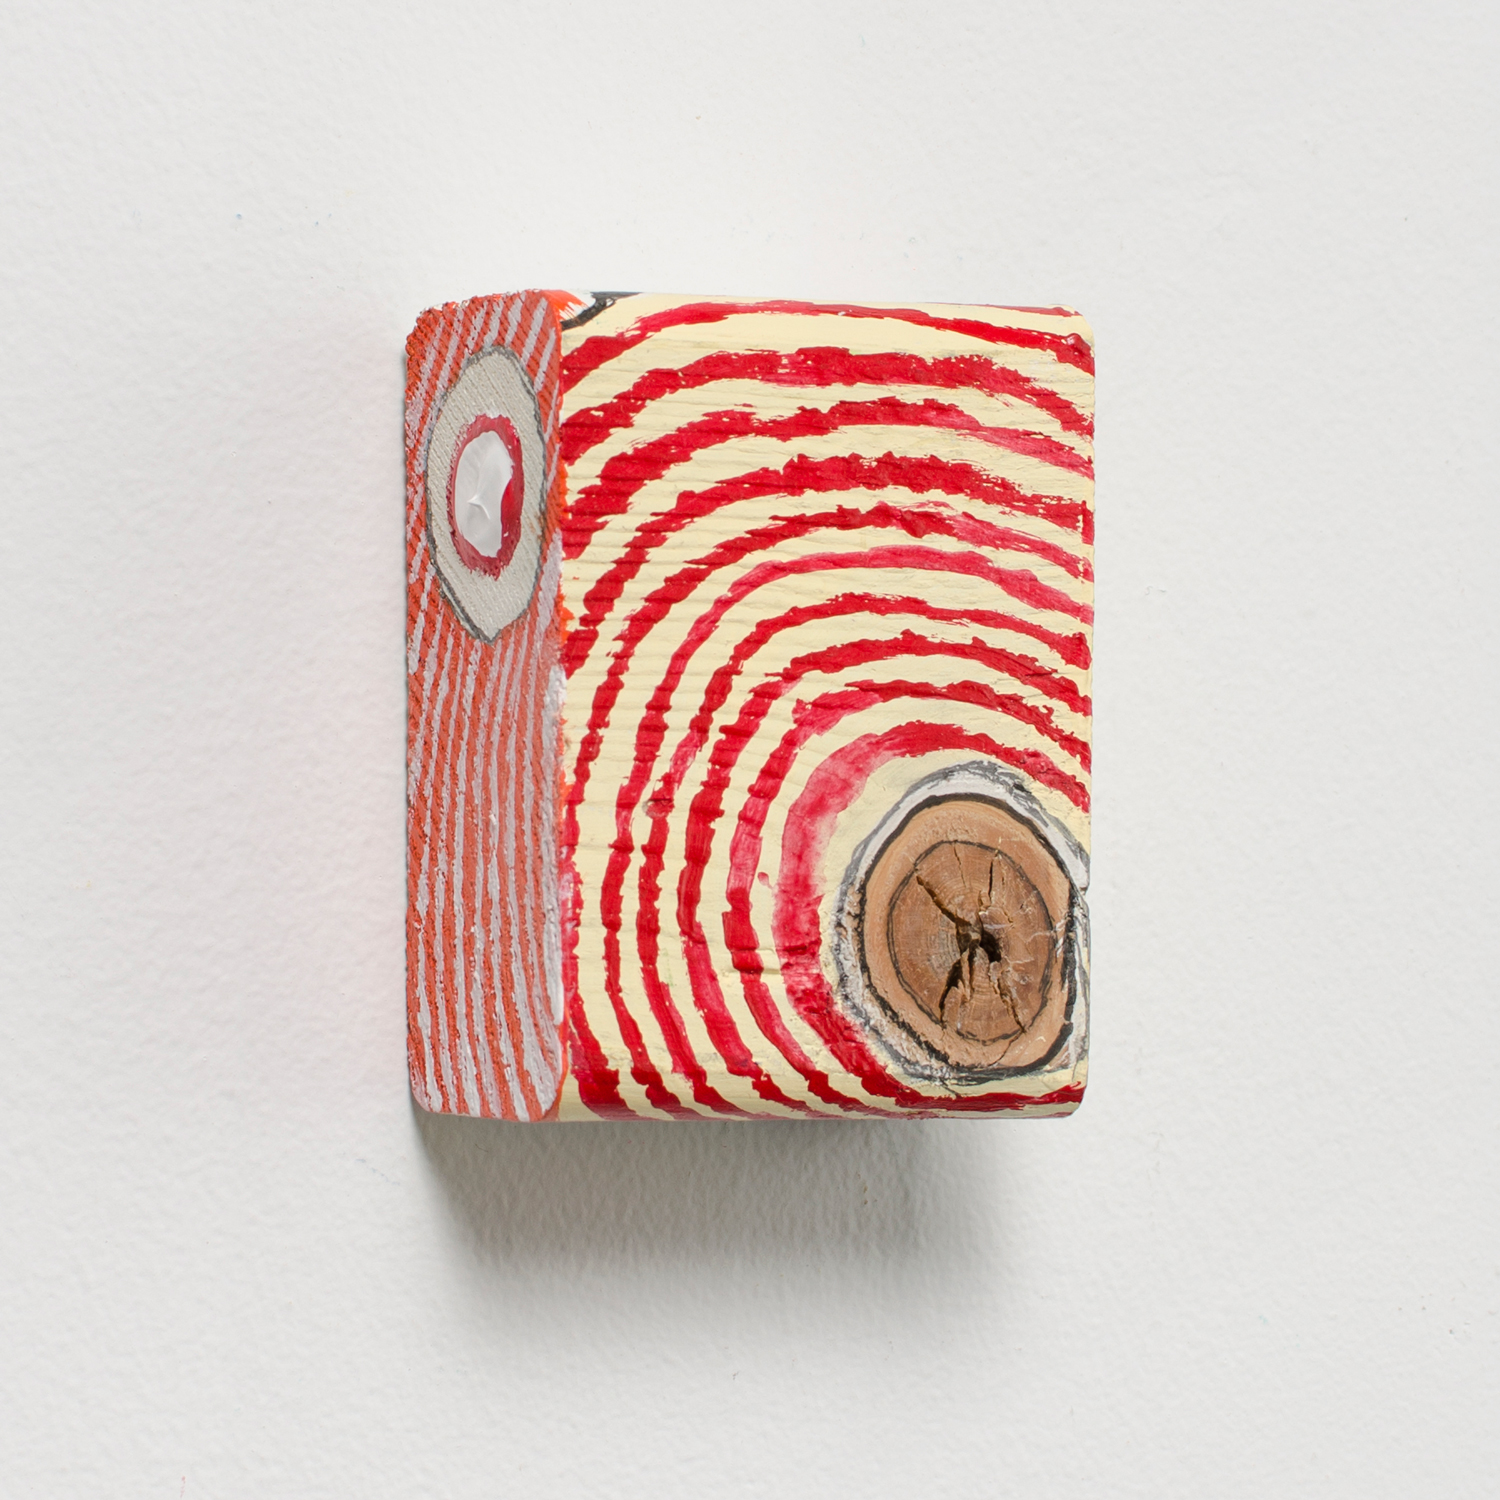 Red Core , 2016, acrylic and graphite on wood, 4 x 3.5 x 3 in